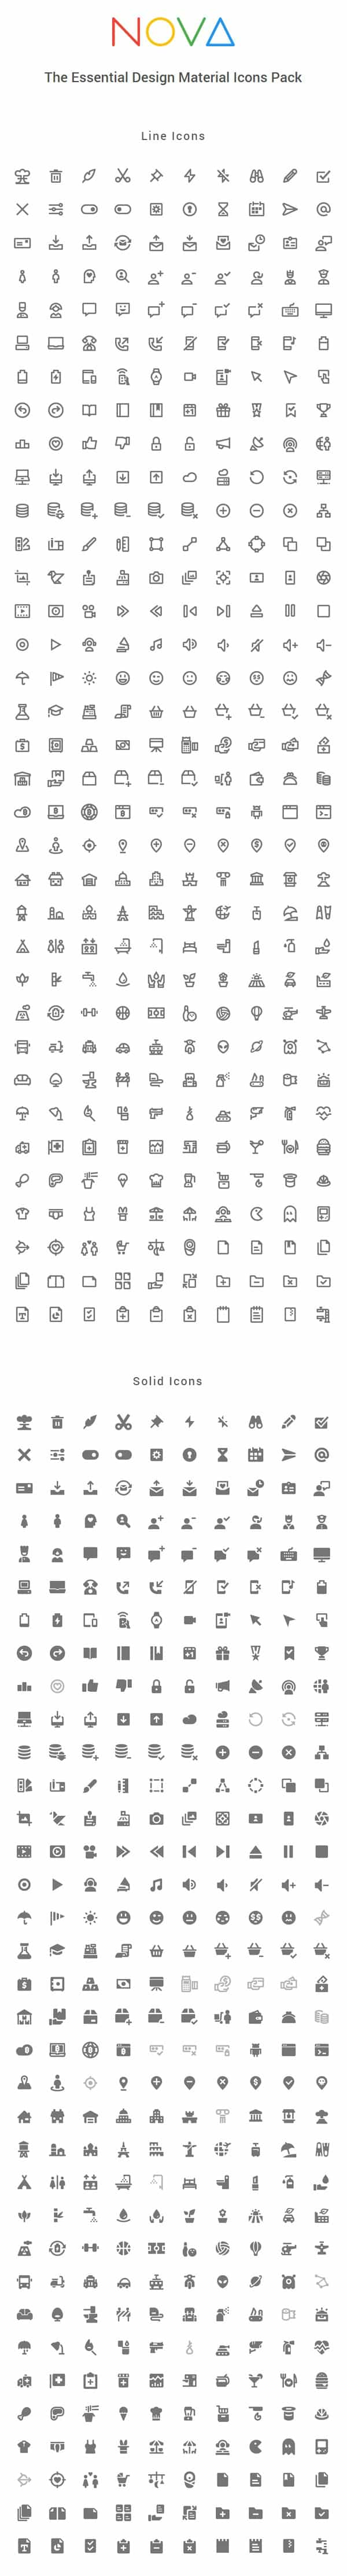 Nova: 350 Material Style Icons | GraphicBurger